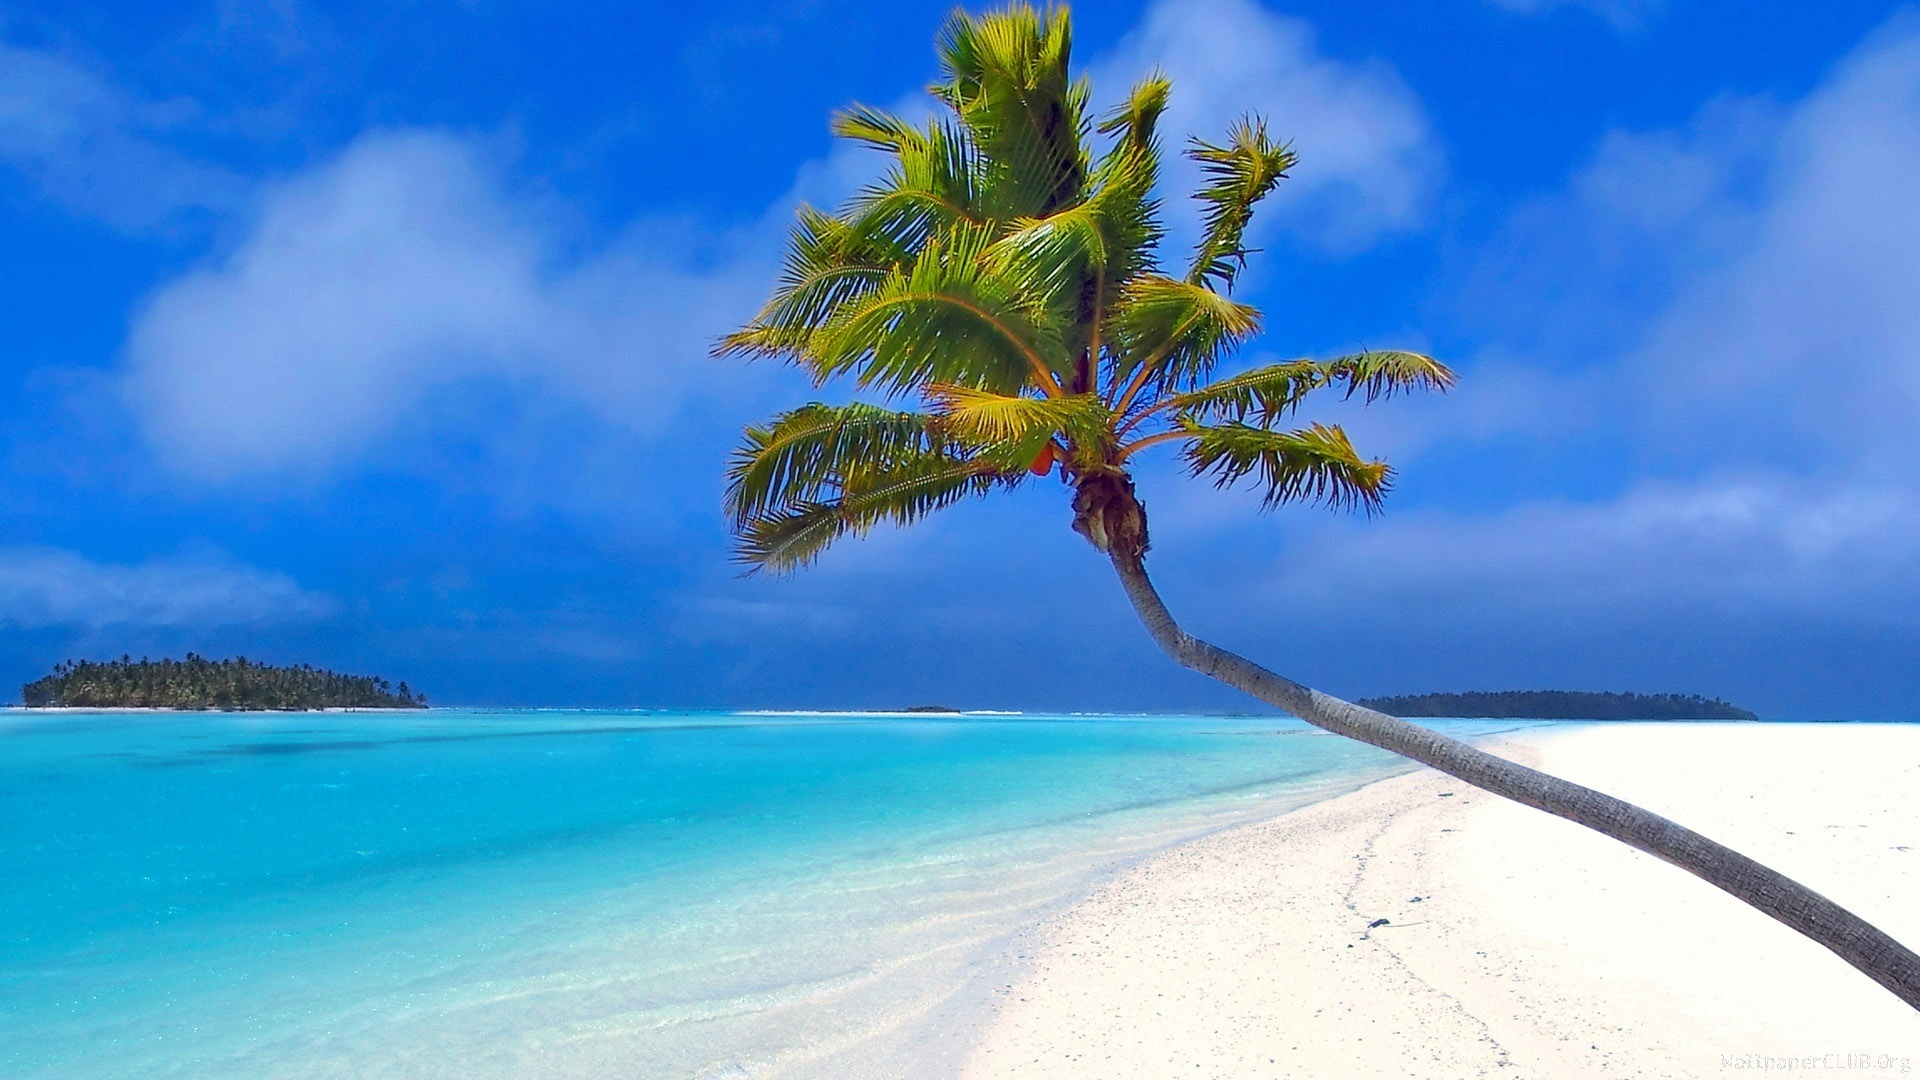 Maldives beach palm